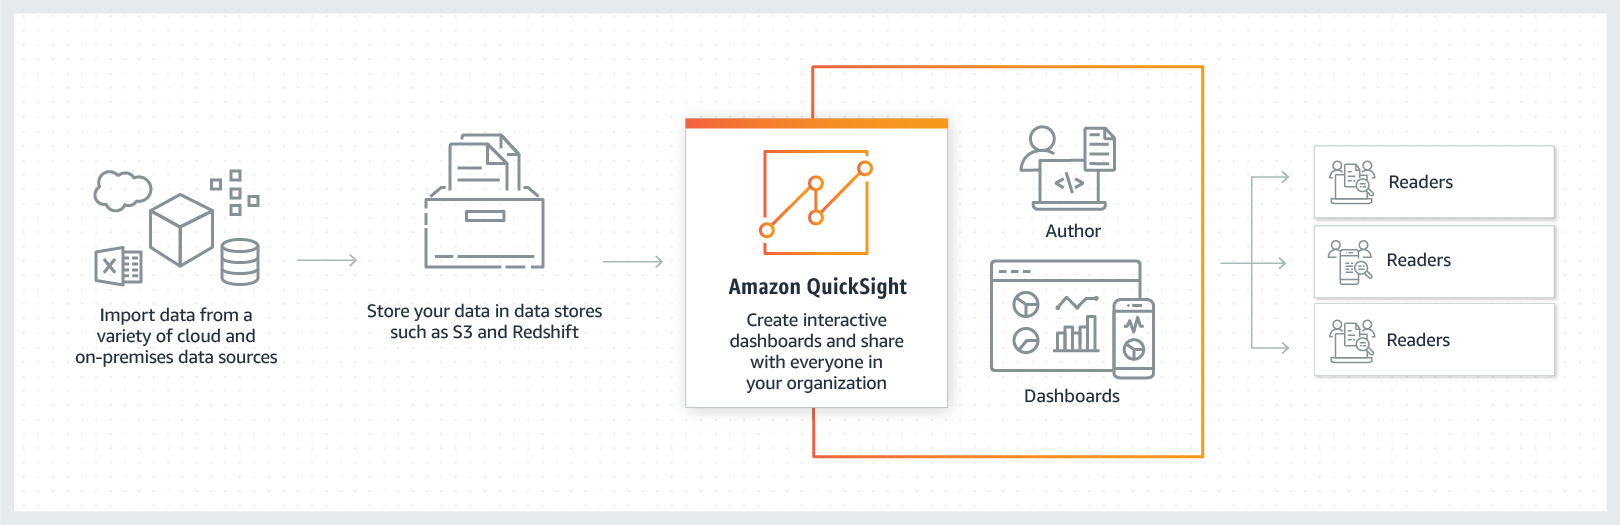 Provide interactive dashboards_QuickSight